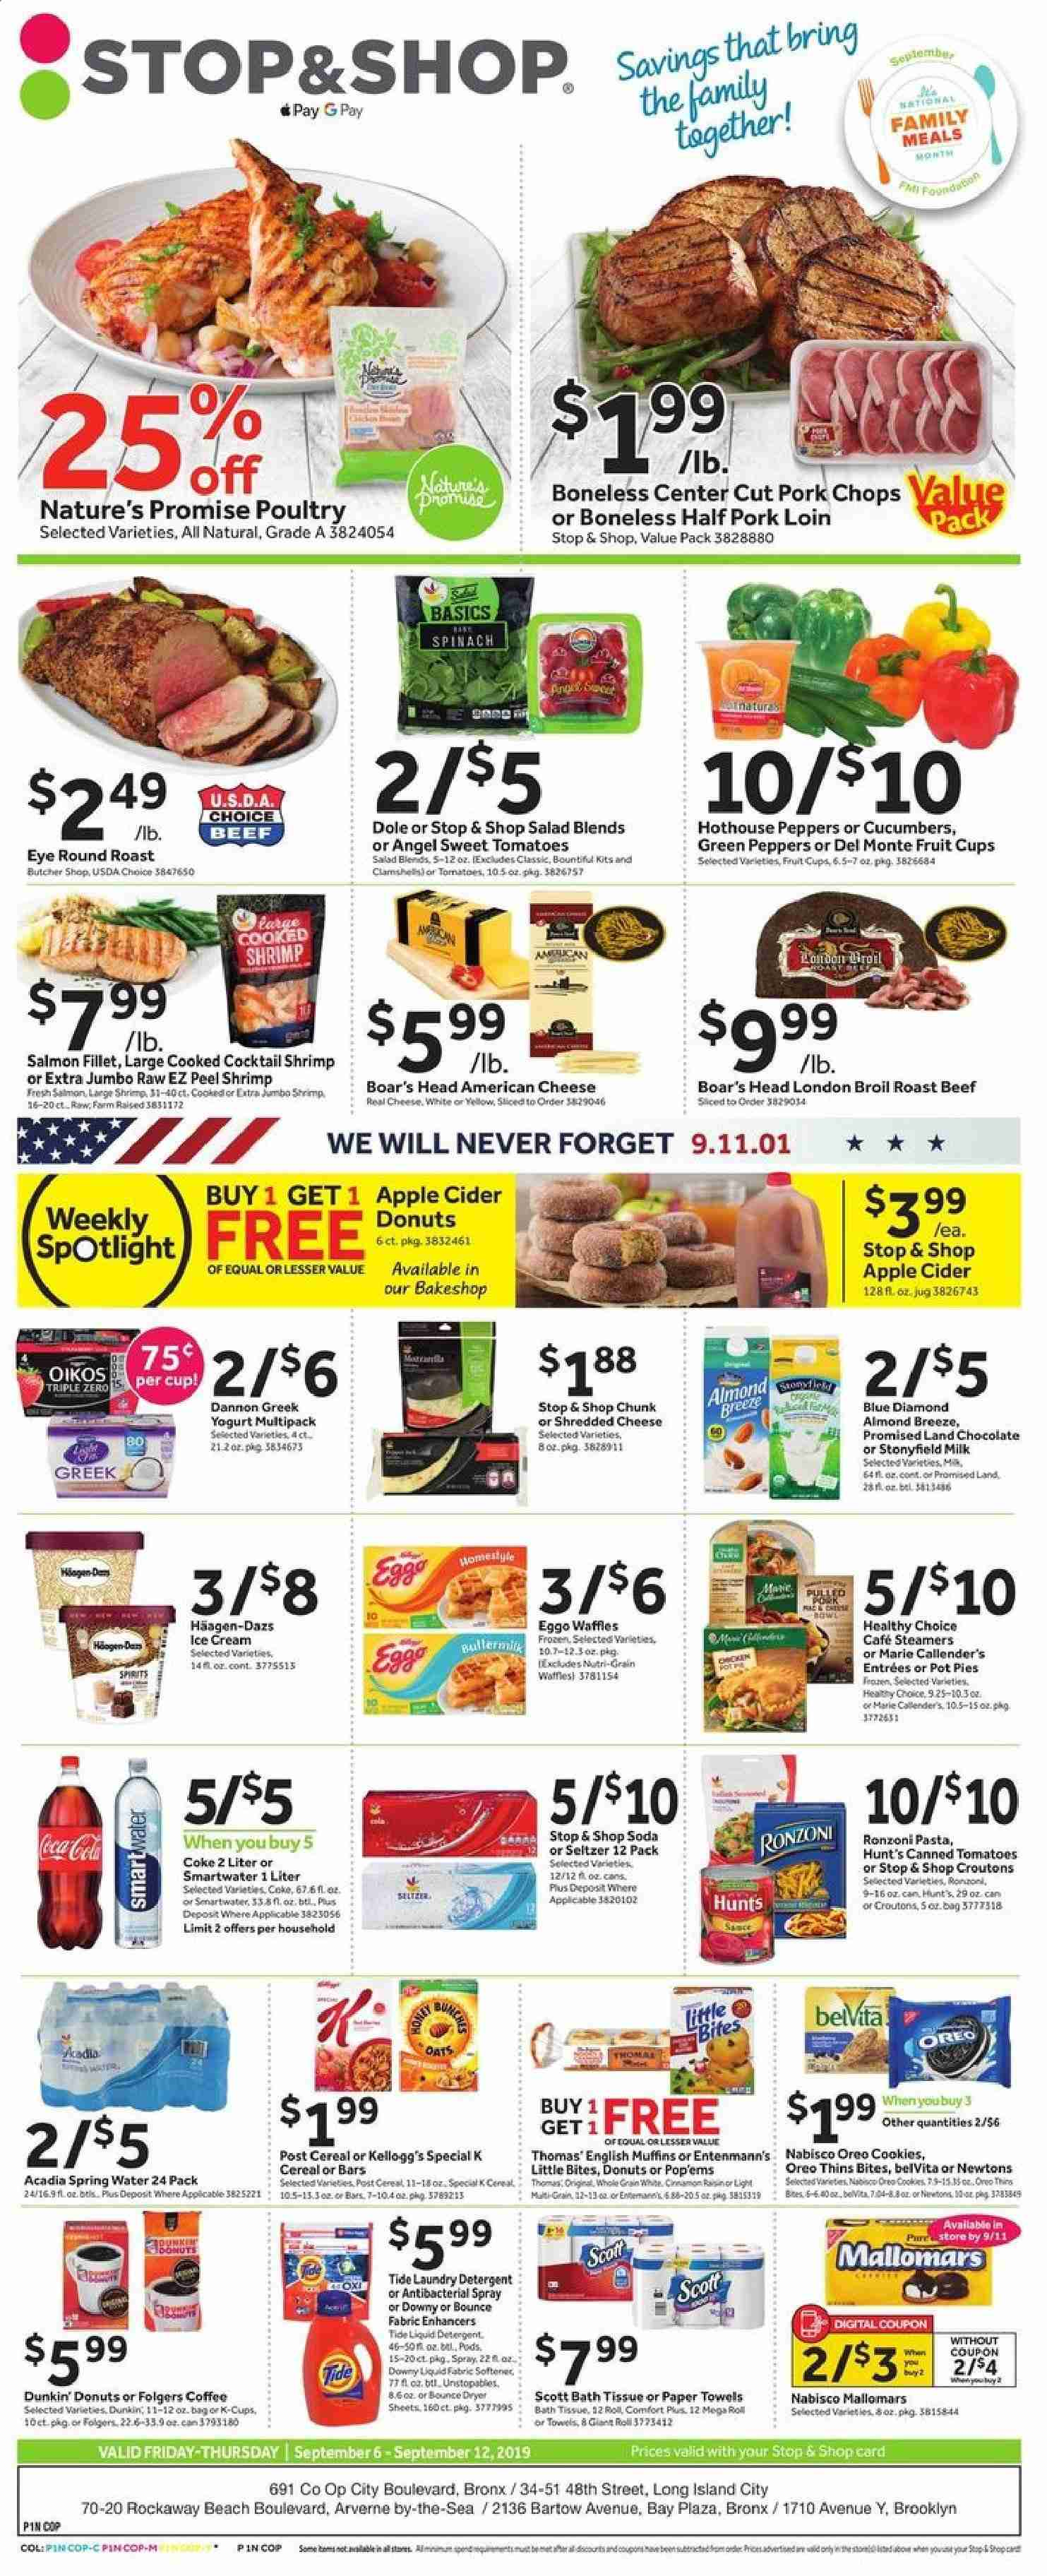 Stop & Shop Flyer - 09.06.2019 - 09.12.2019 - Sales products - fruit cups, Dole, Nature's Promise, pot pie, donut, muffin, waffles, Dunkin' Donuts, Entenmann's, Little Bites, chicken, beef meat, round roast, roast beef, pork chops, pork loin, pork meat, salmon, salmon fillet, shrimps, english muffins, salad, Healthy Choice, Marie Callender's, american cheese, shredded cheese, greek yoghurt, Oreo, yoghurt, Oikos, Dannon, Almond Breeze, milk, ice cream, Häagen-Dazs, spinach, cookies, chocolate, Kellogg's, croutons, Thins, oats, cereals, belVita, pasta, Blue Diamond, Coca-Cola, soda, seltzer water, spring water, Acadia, coffee, Folgers, coffee capsules, K-Cups, apple cider, bath tissue, kitchen towels, paper towels, Downy, Tide, Unstopables, fabric softener, laundry detergent, Bounce, Comfort, dryer sheets, antibacterial spray, pin, spot light, water. Page 1.